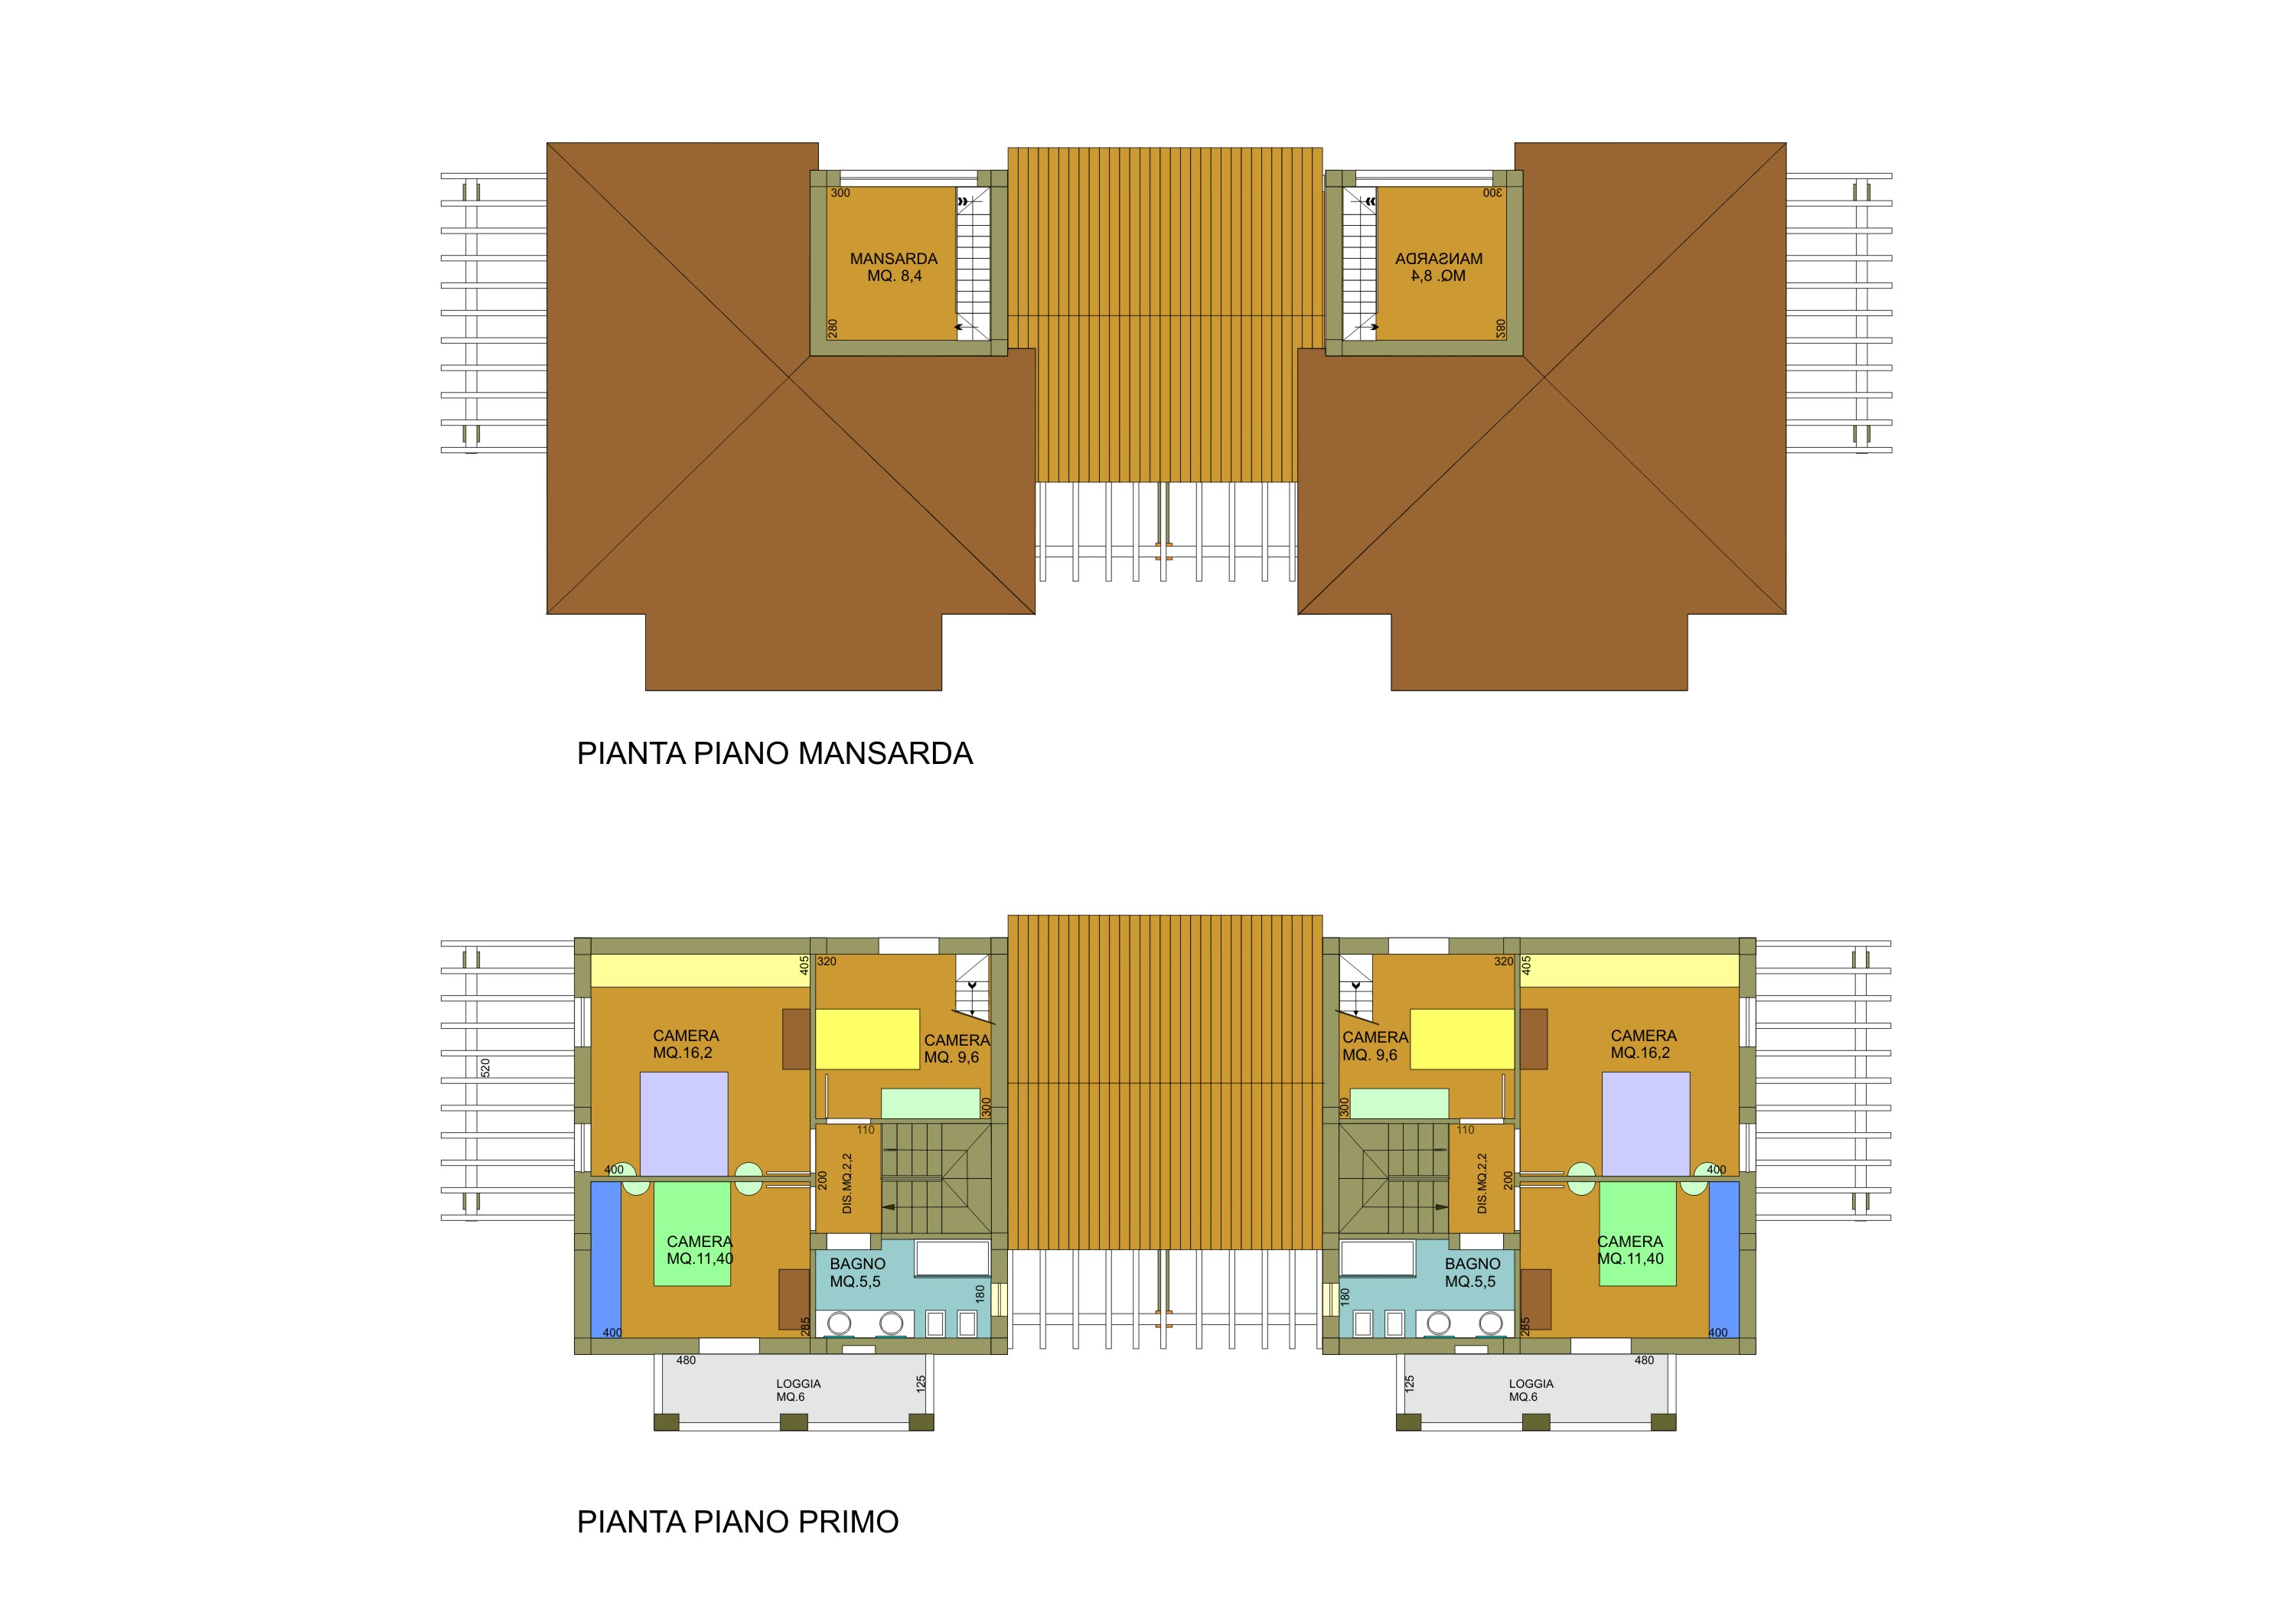 Plan 2/3 for ref. PE001